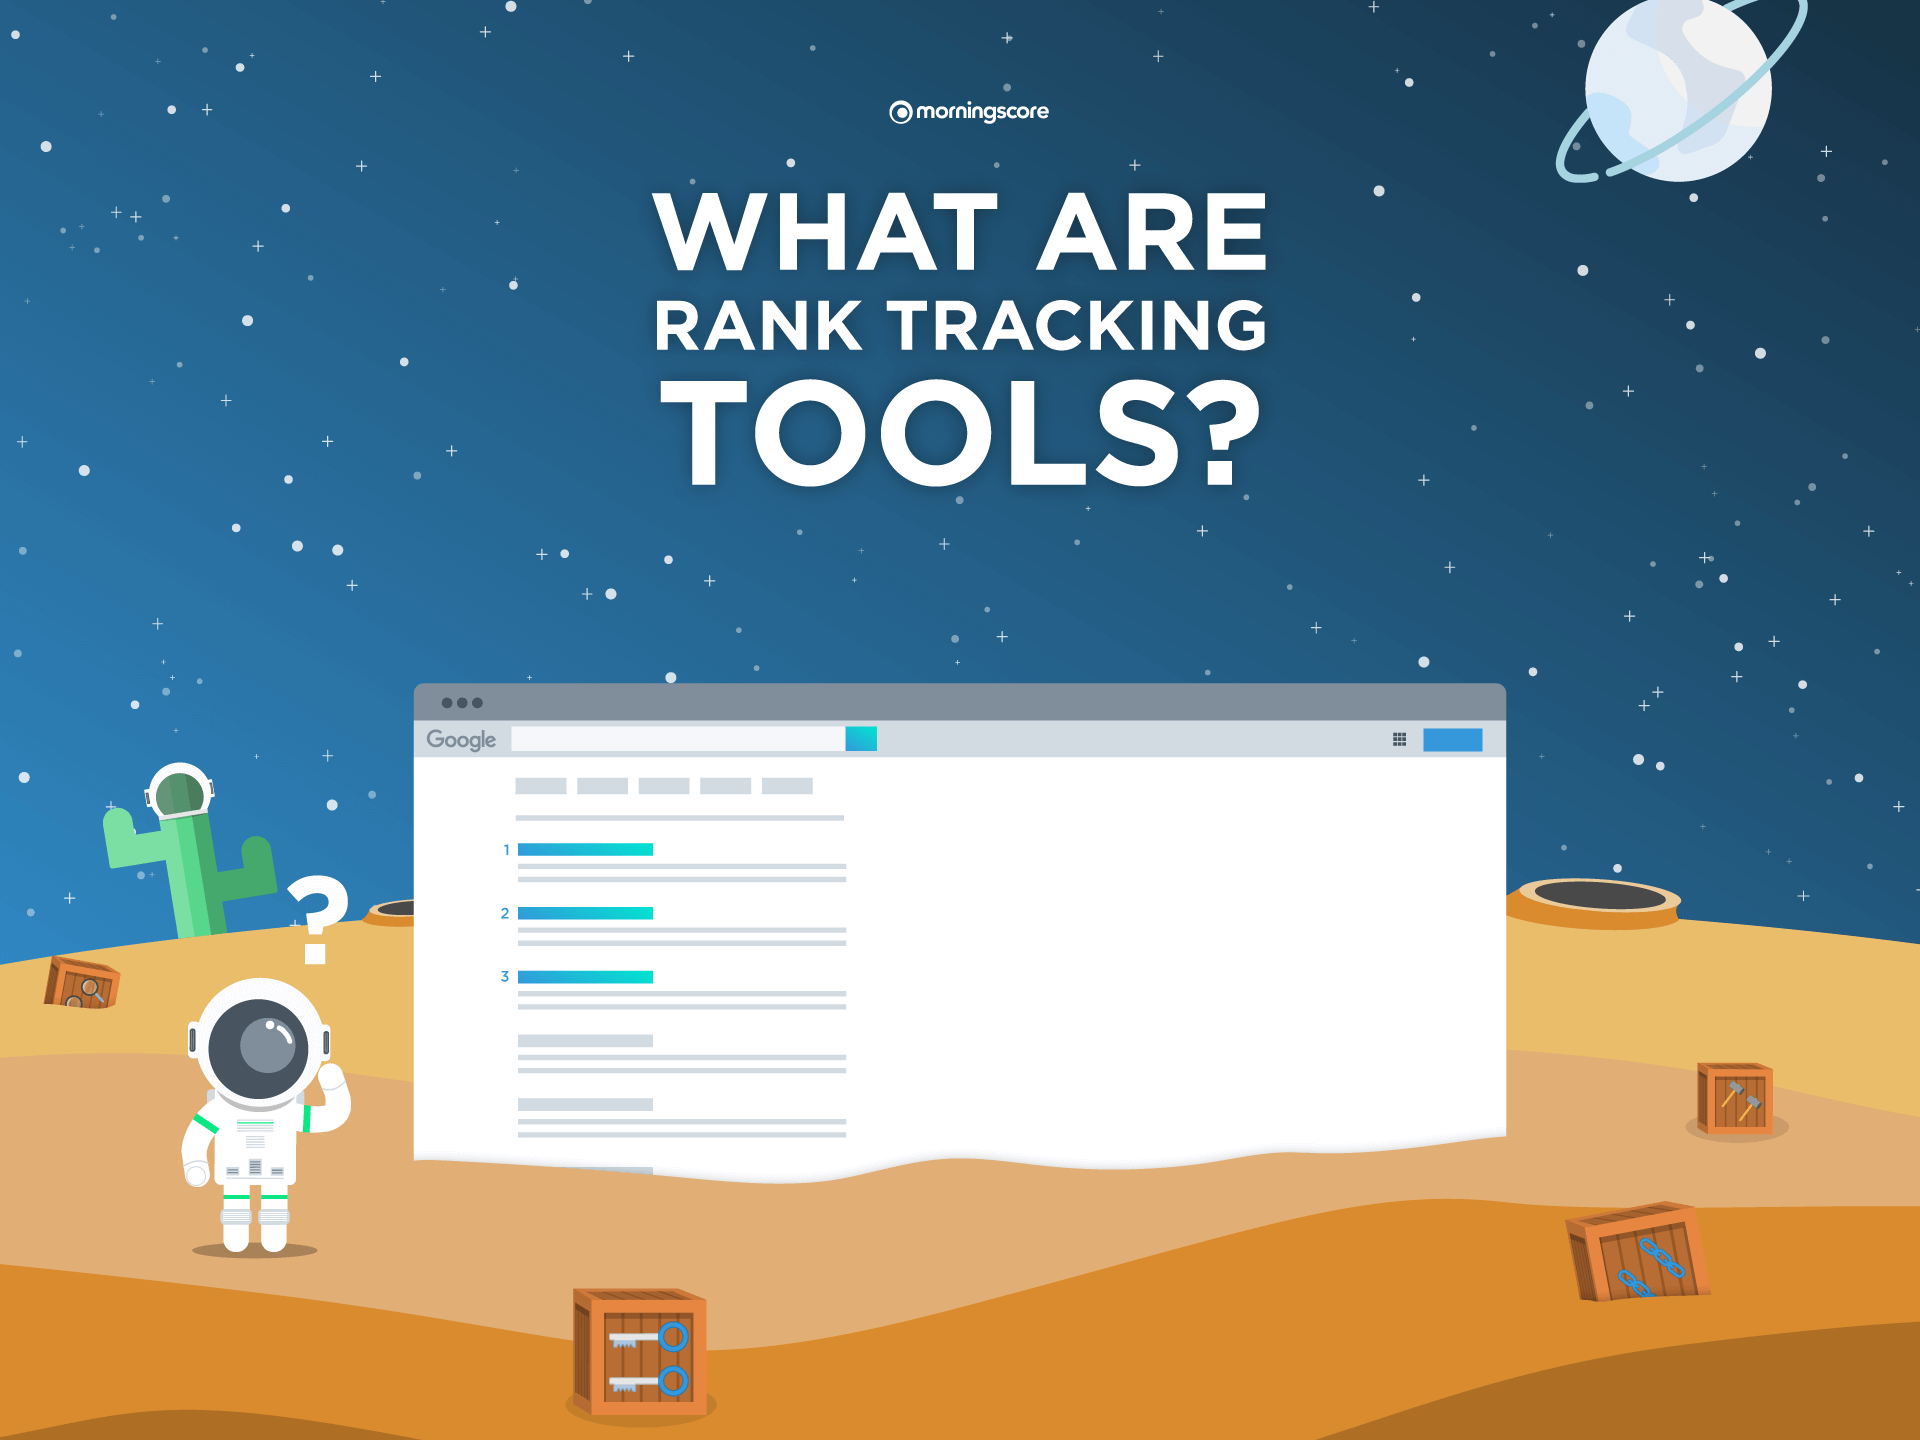 what are keyword rank tracking tools, how do they work, what are they used for, and what are their benefits